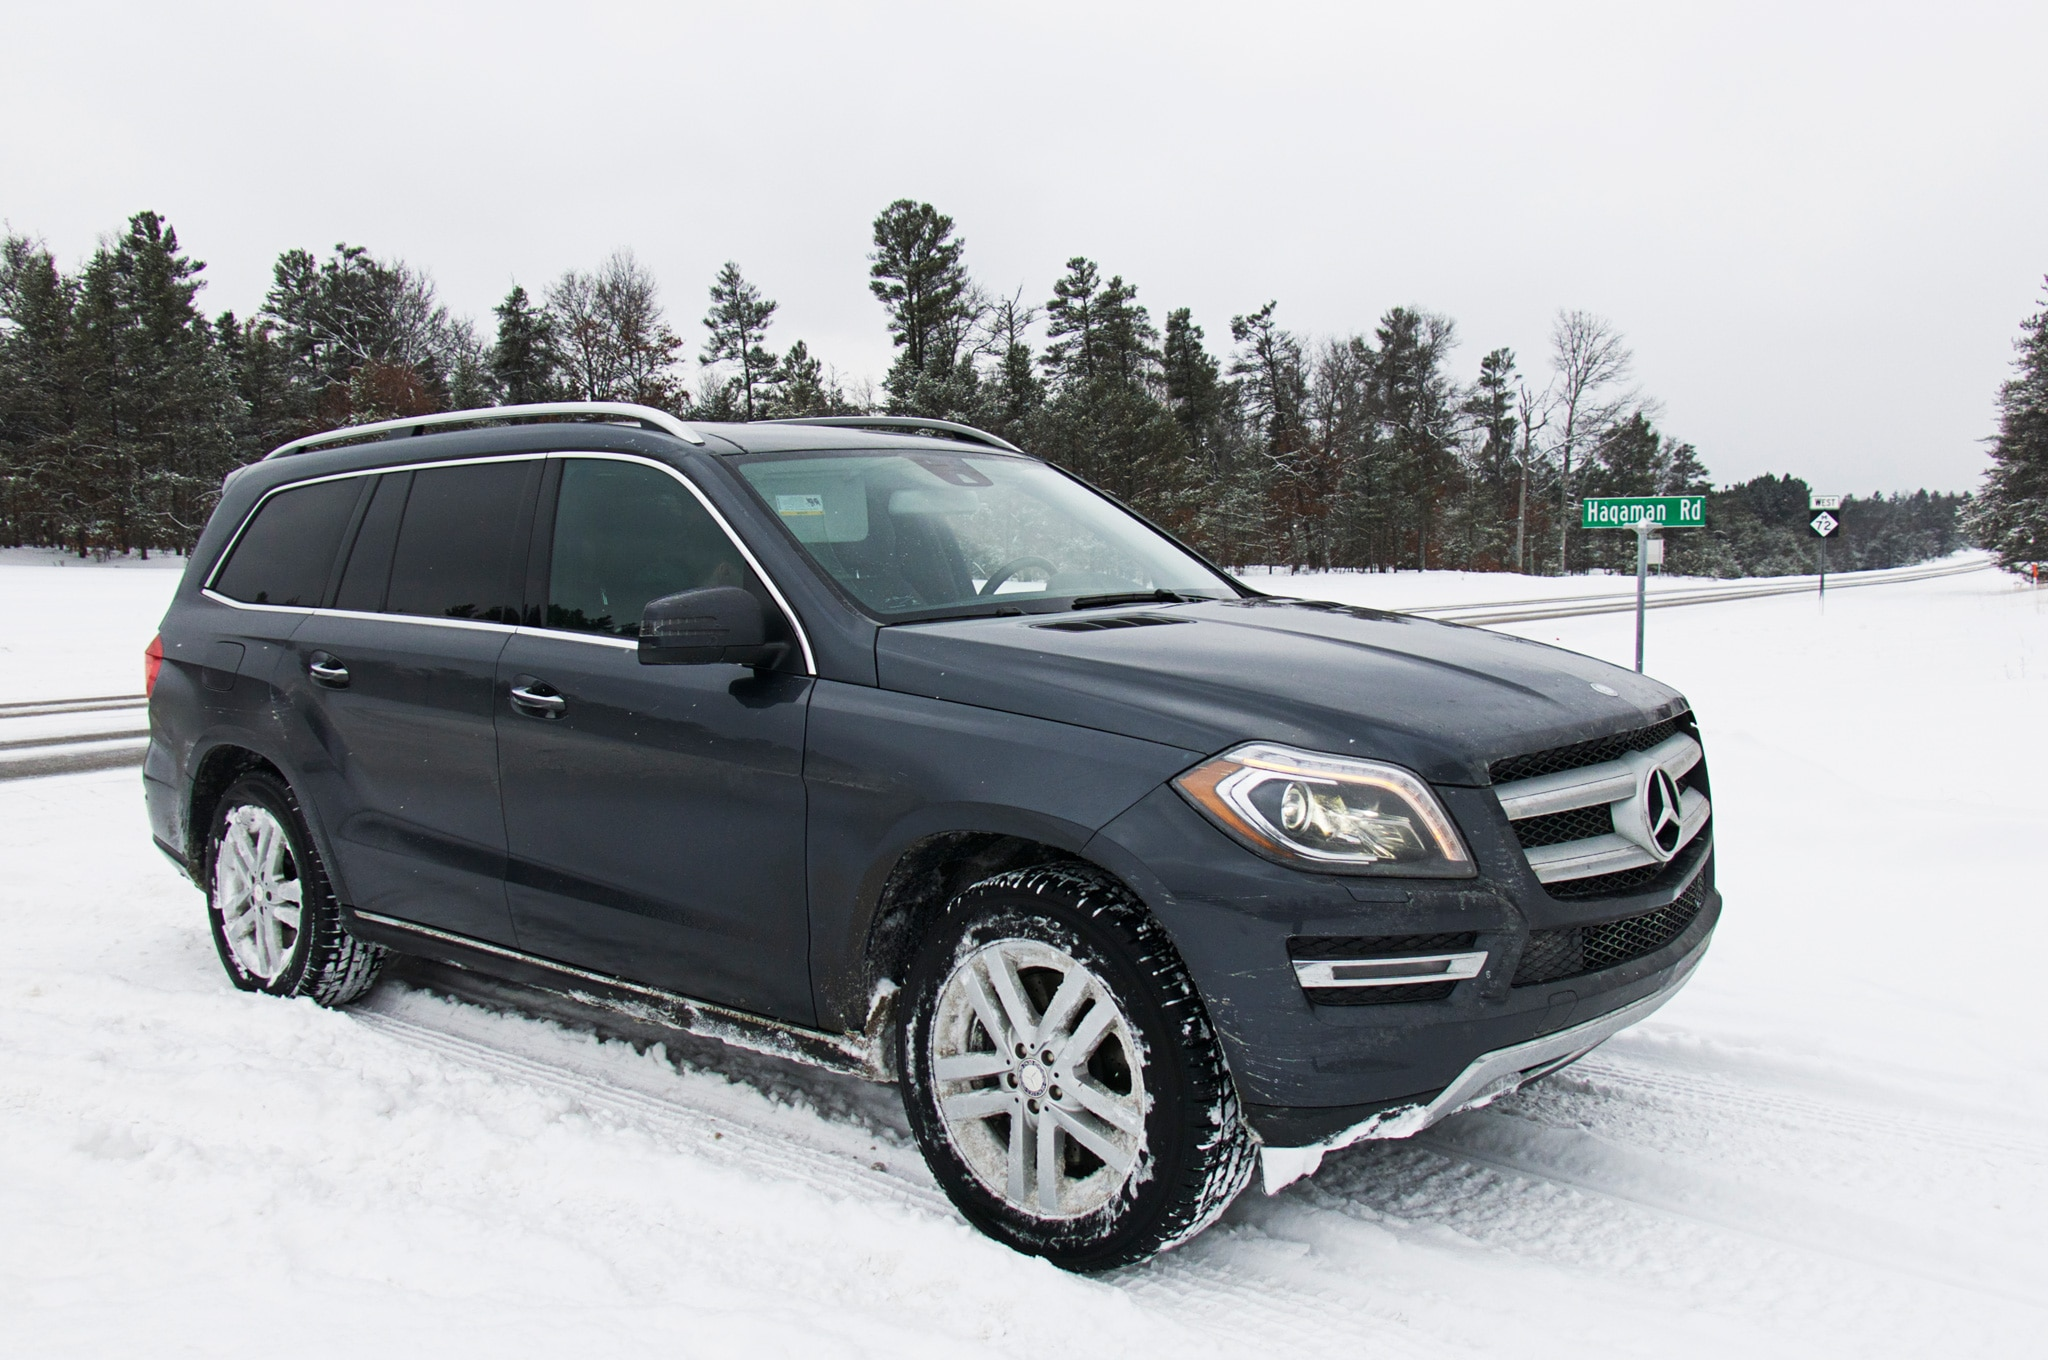 2013-Mercedes-Benz-GL450-front-three-quarters-view-in-snow-2 Interesting Info About 2013 Mercedes Gl450 for Sale